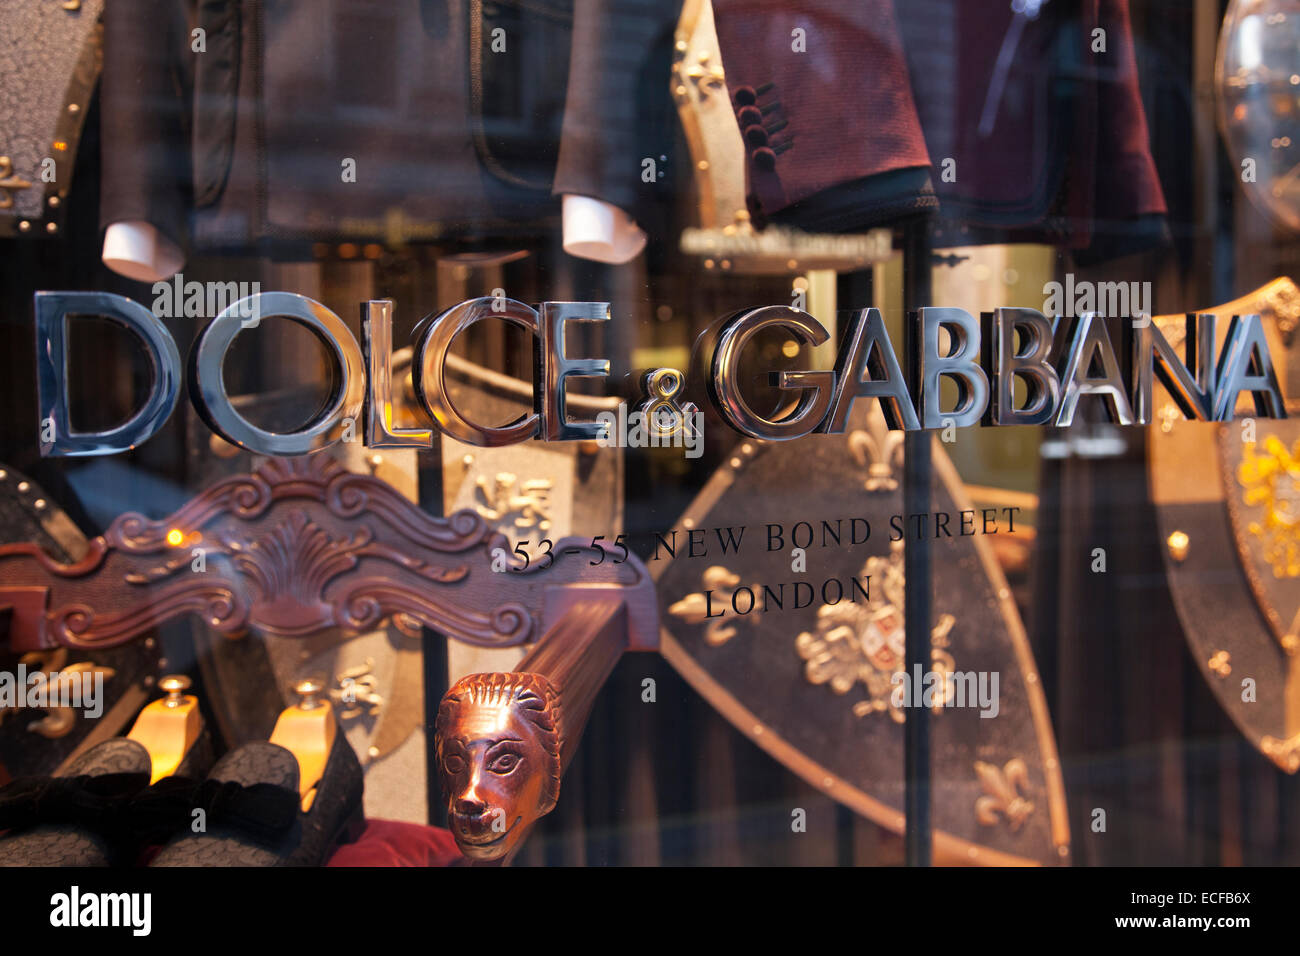 Dolce & Gabbana fashion store on New Bond Street - Stock Image